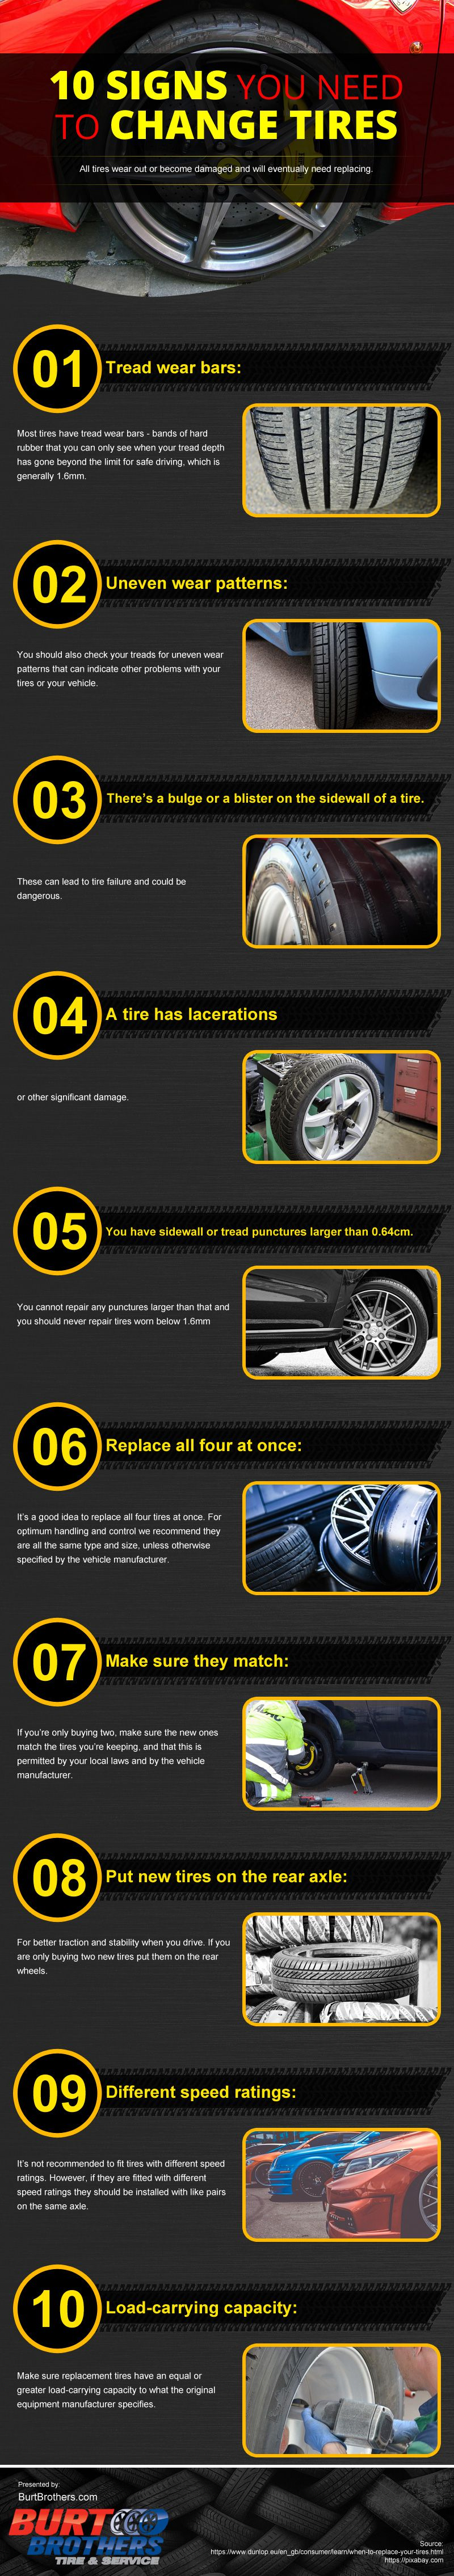 10 Signs You Need to Change Tires